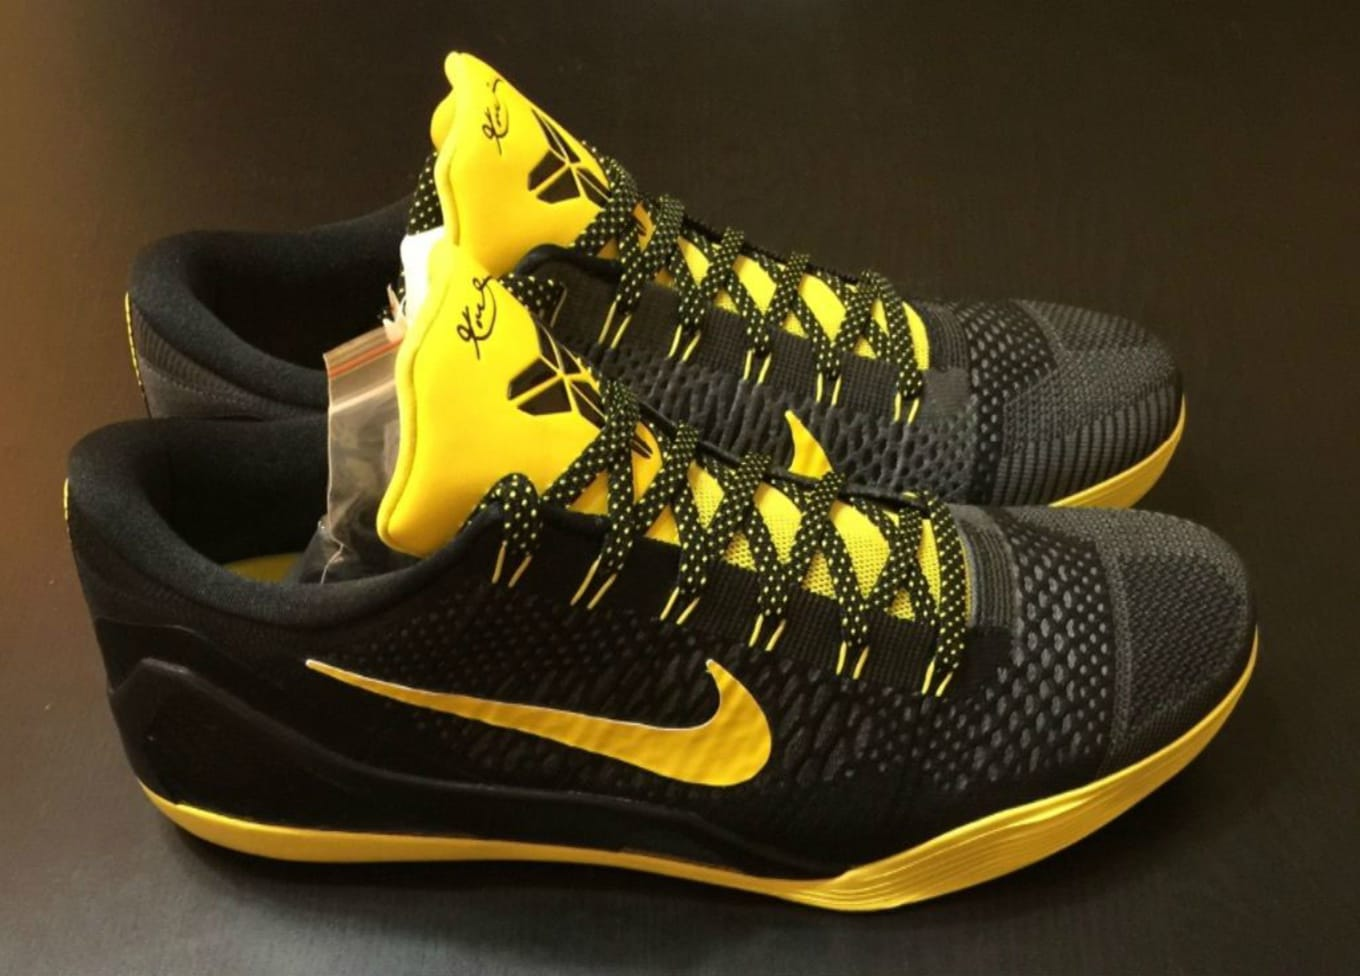 994a0a2768dc Unreleased Nike Kobe Samples